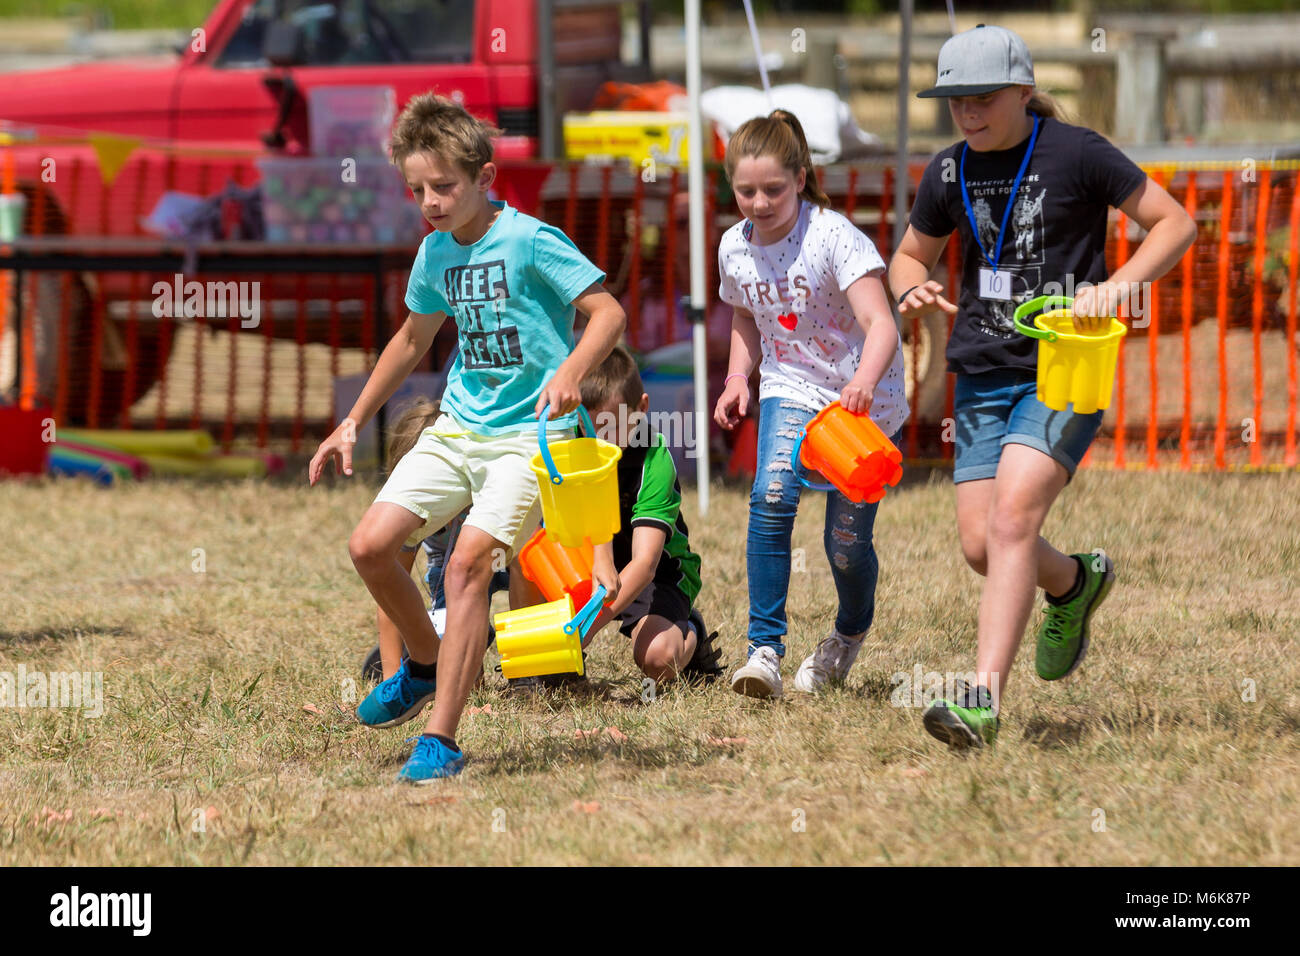 Melbourne, Australia. 04th Mar, 2018. MELBOURNE, AUSTRALIA - MARCH 4: Kids and families enjoying a day with their - Stock Image